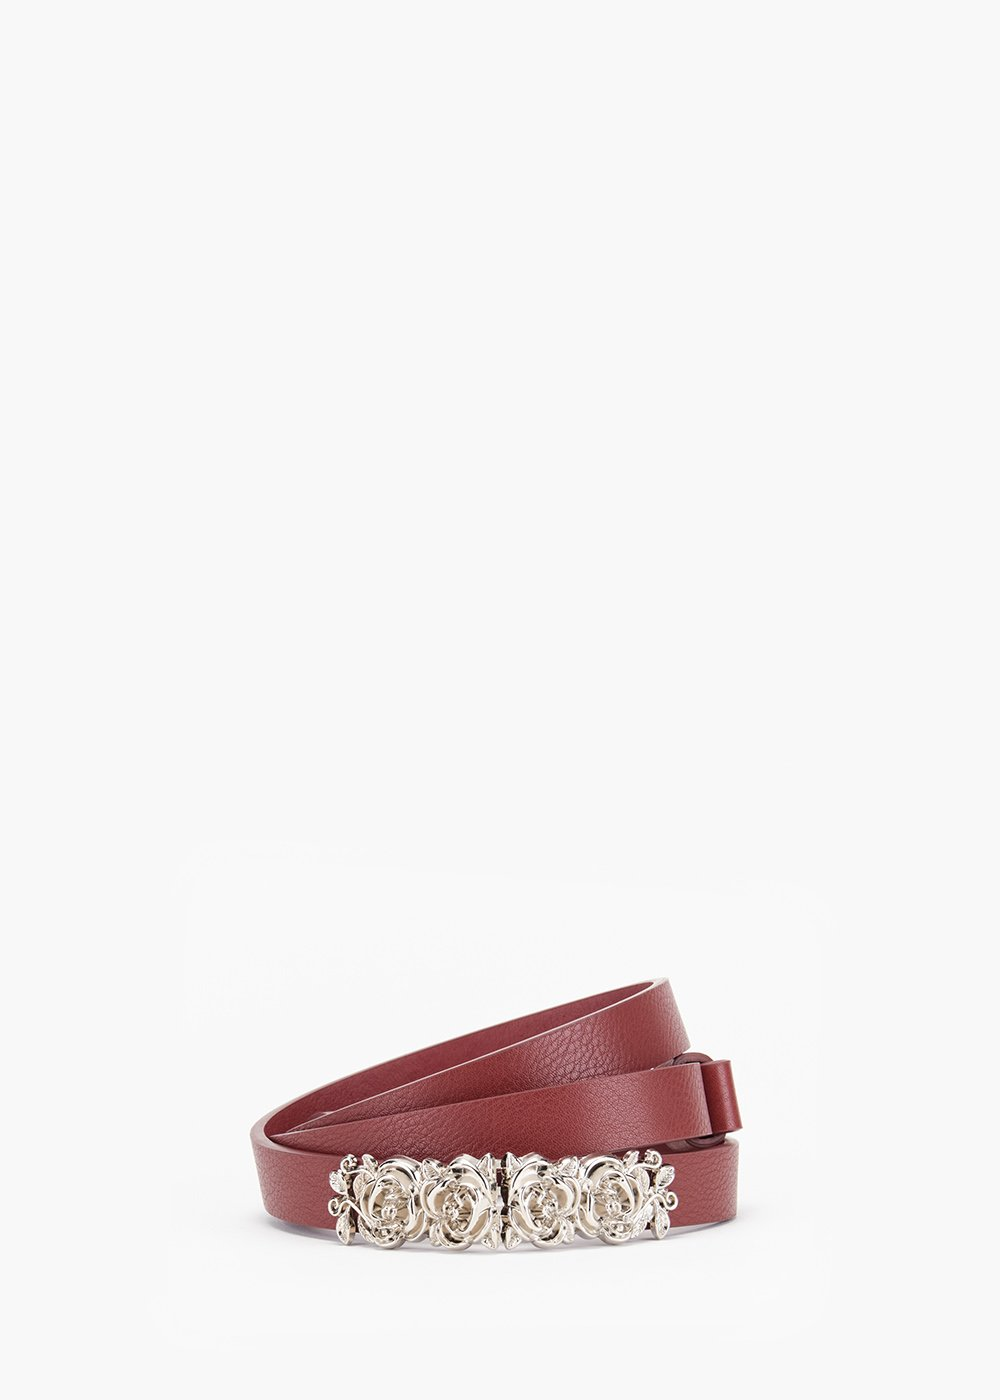 Cathie strap in eco leather with floral metal buckle - Bordeaux - Woman